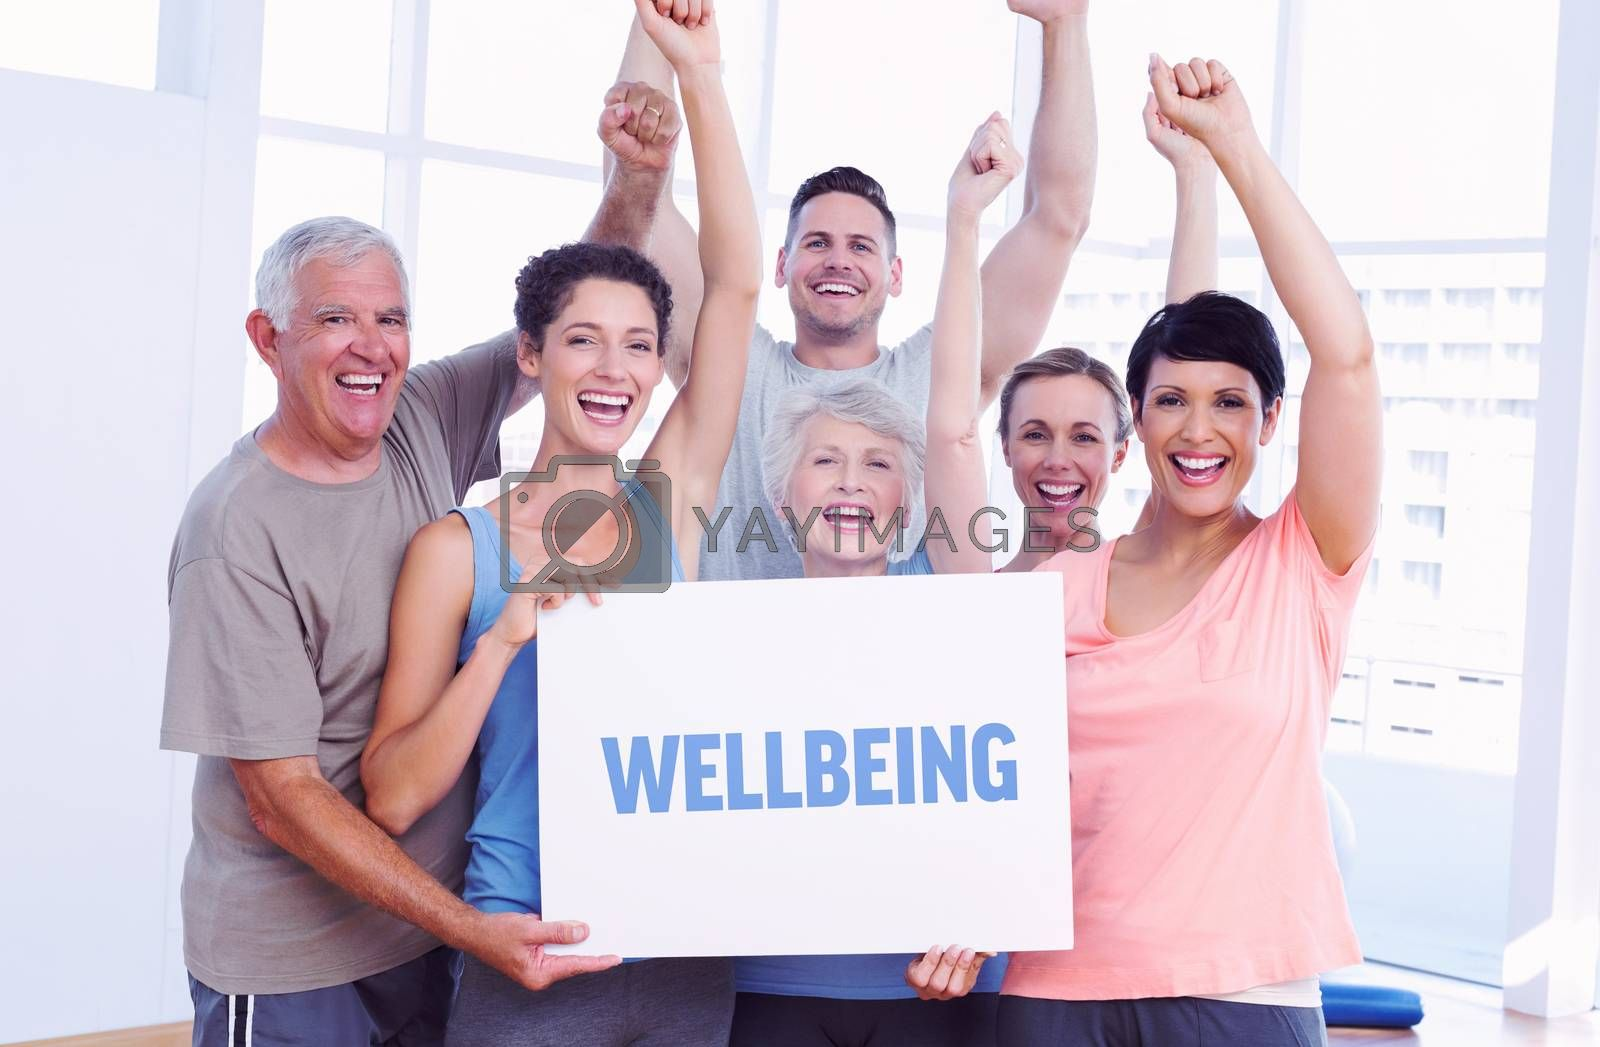 The word wellbeing against portrait of happy fit people holding blank board